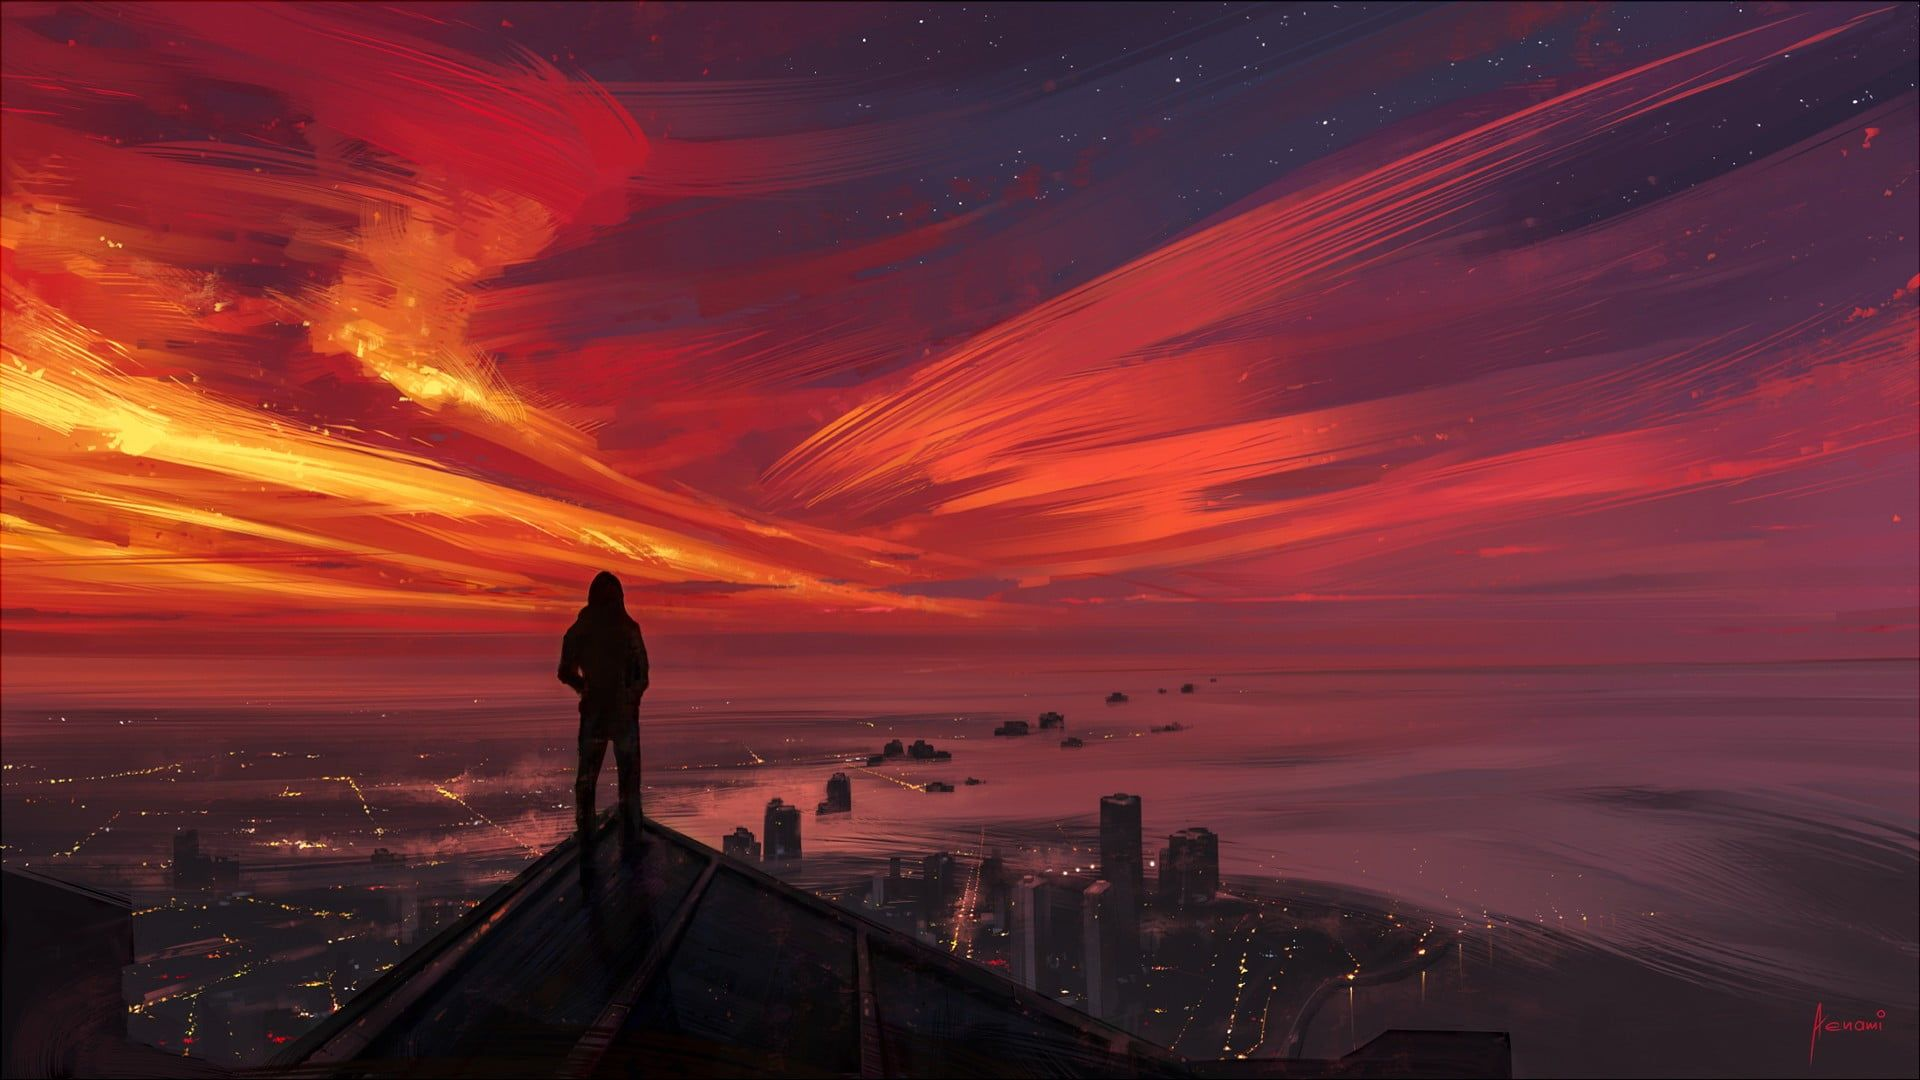 silhouette of man on roof digital wallpaper, person standing on top of building with a view of city during sunset looking into the distance #cityscape #painting #sunset #sky #dark #sunlight #horizon #1080P #wallpaper #hdwallpaper #desktop